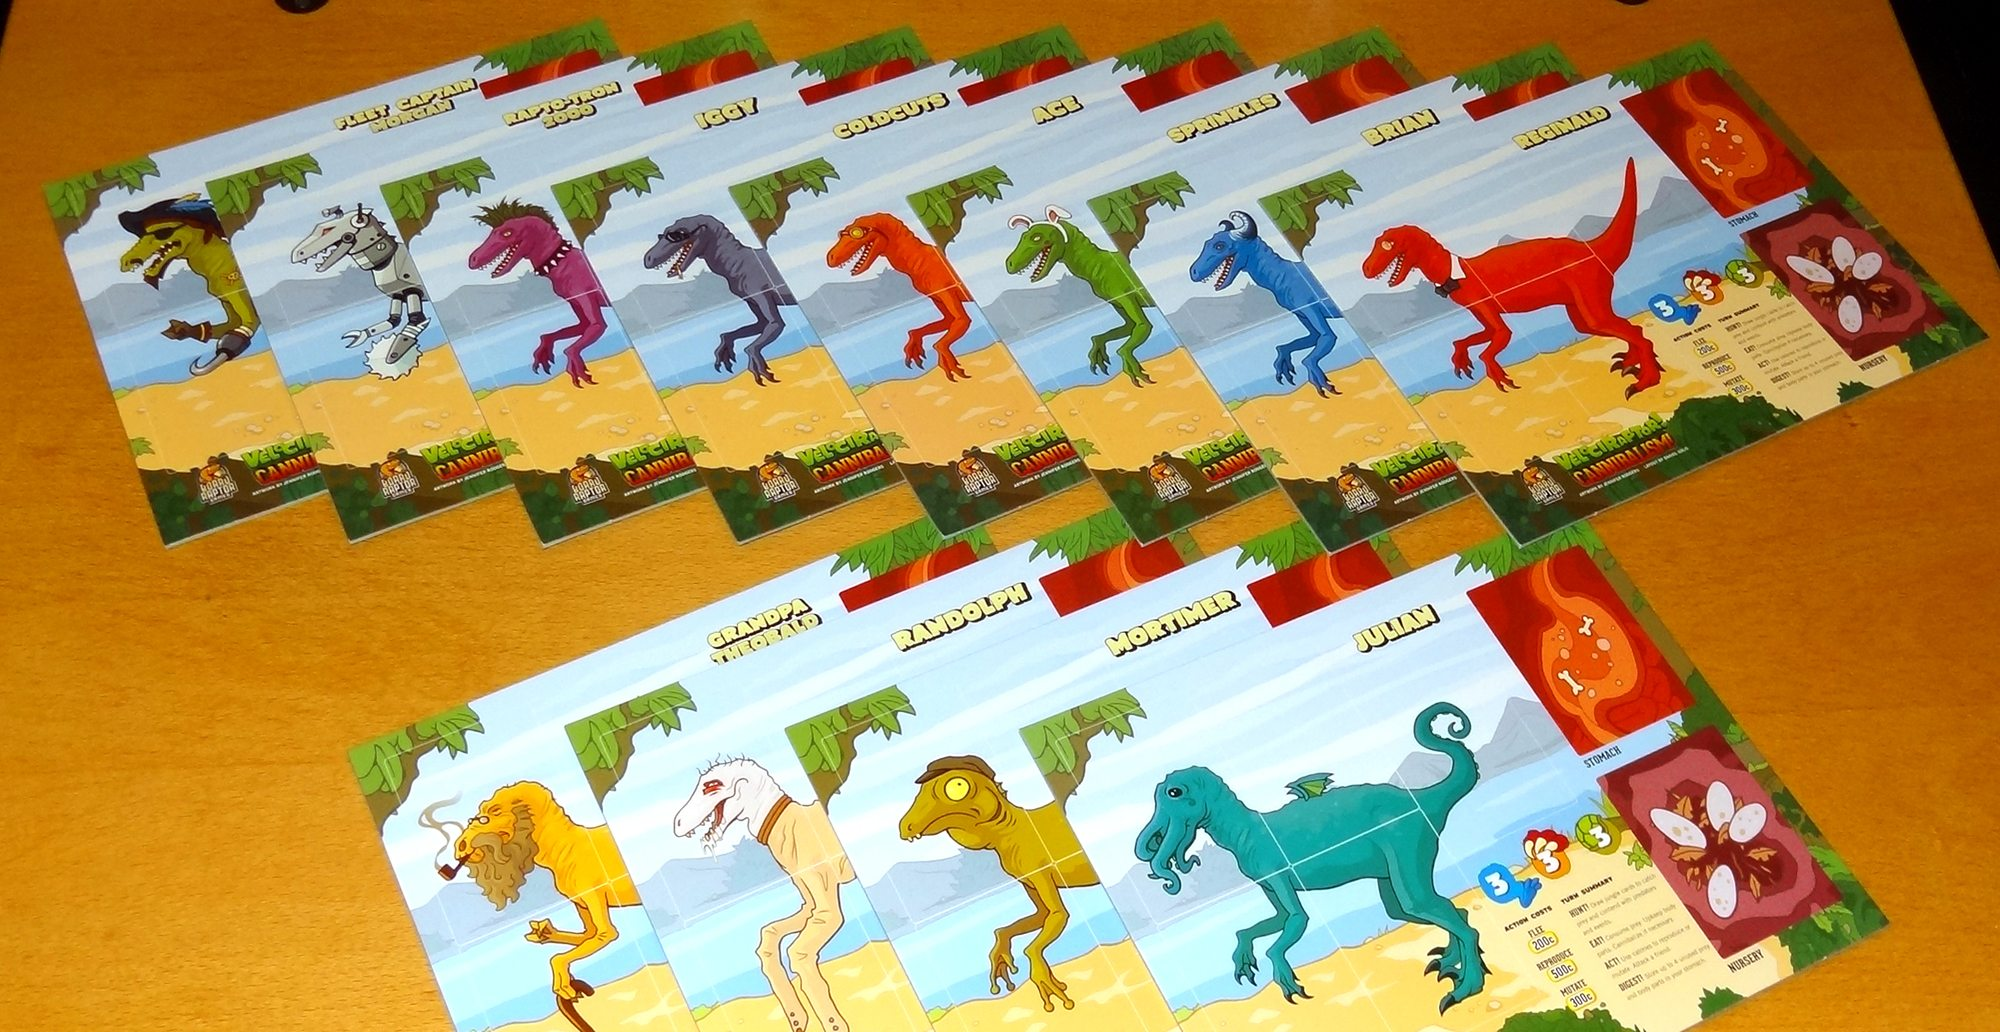 Velociraptor! Cannibalism! player mats